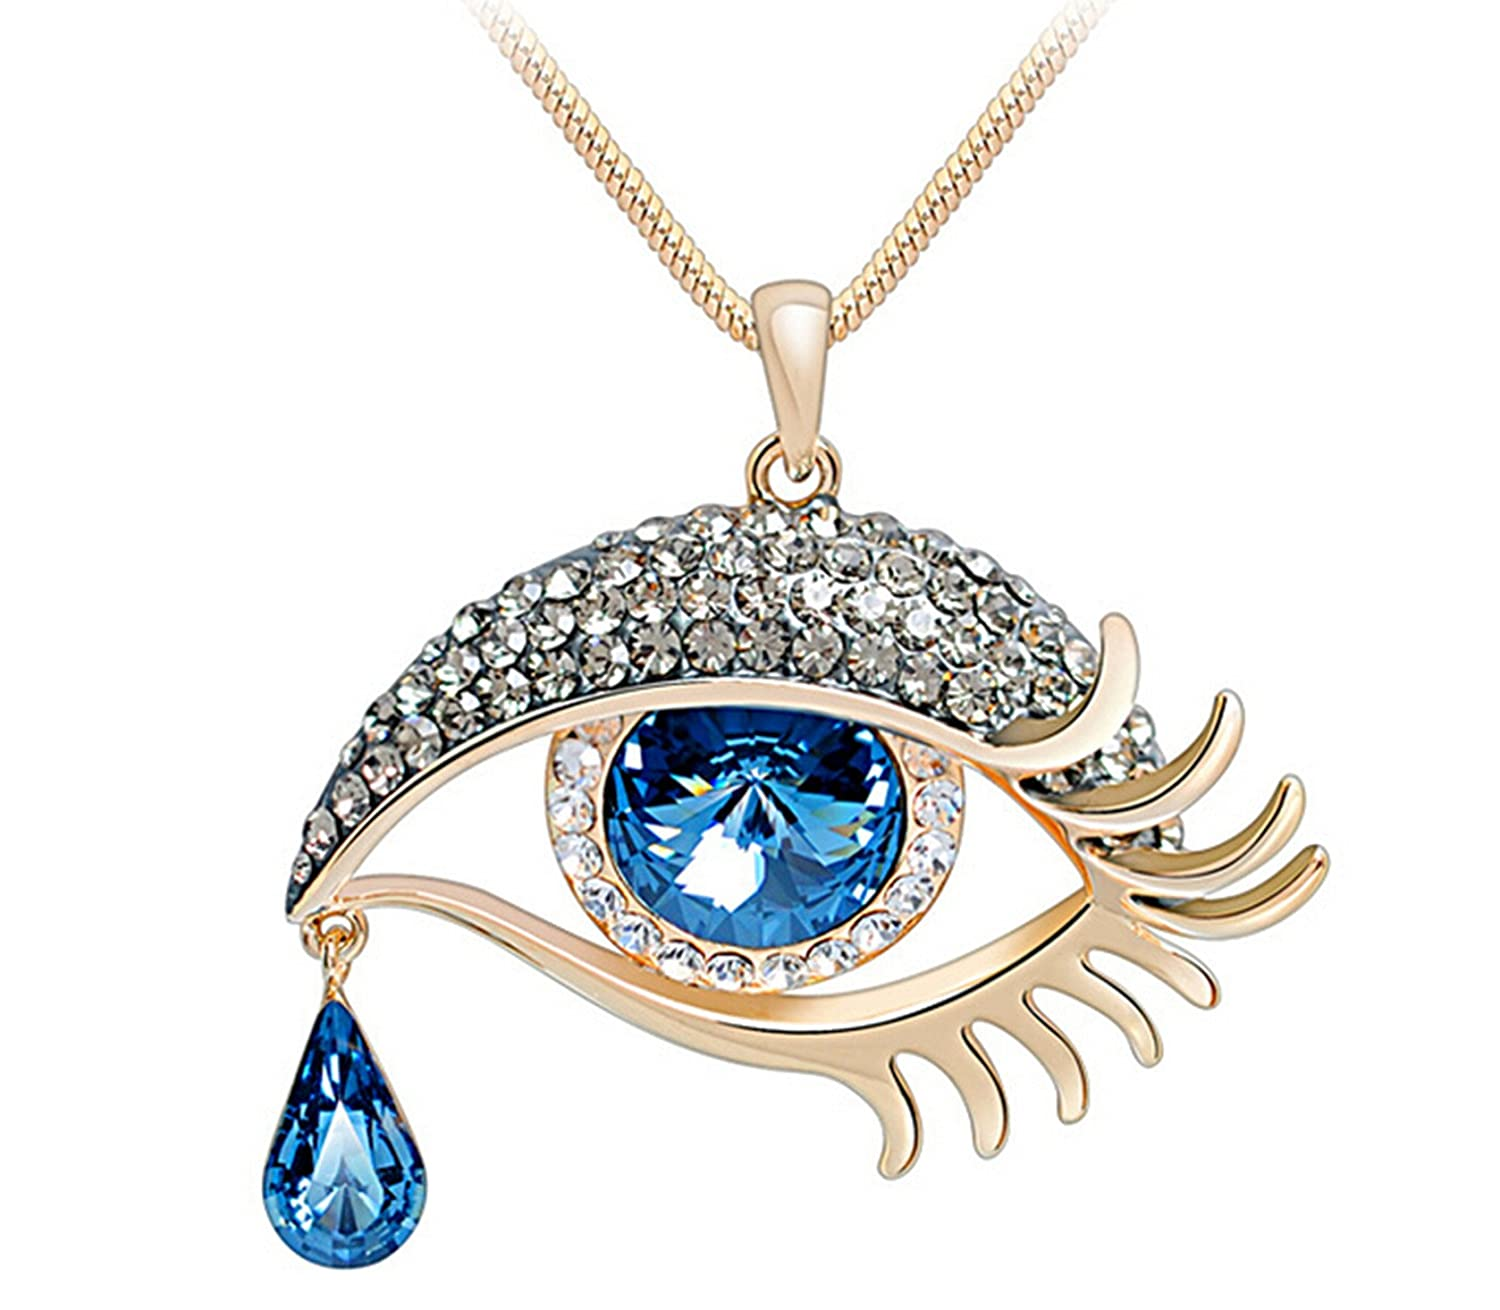 Amazon wiipu teardrop turkish evil eye pendant angels tears amazon wiipu teardrop turkish evil eye pendant angels tears necklacewiipu tb23 jewelry aloadofball Images